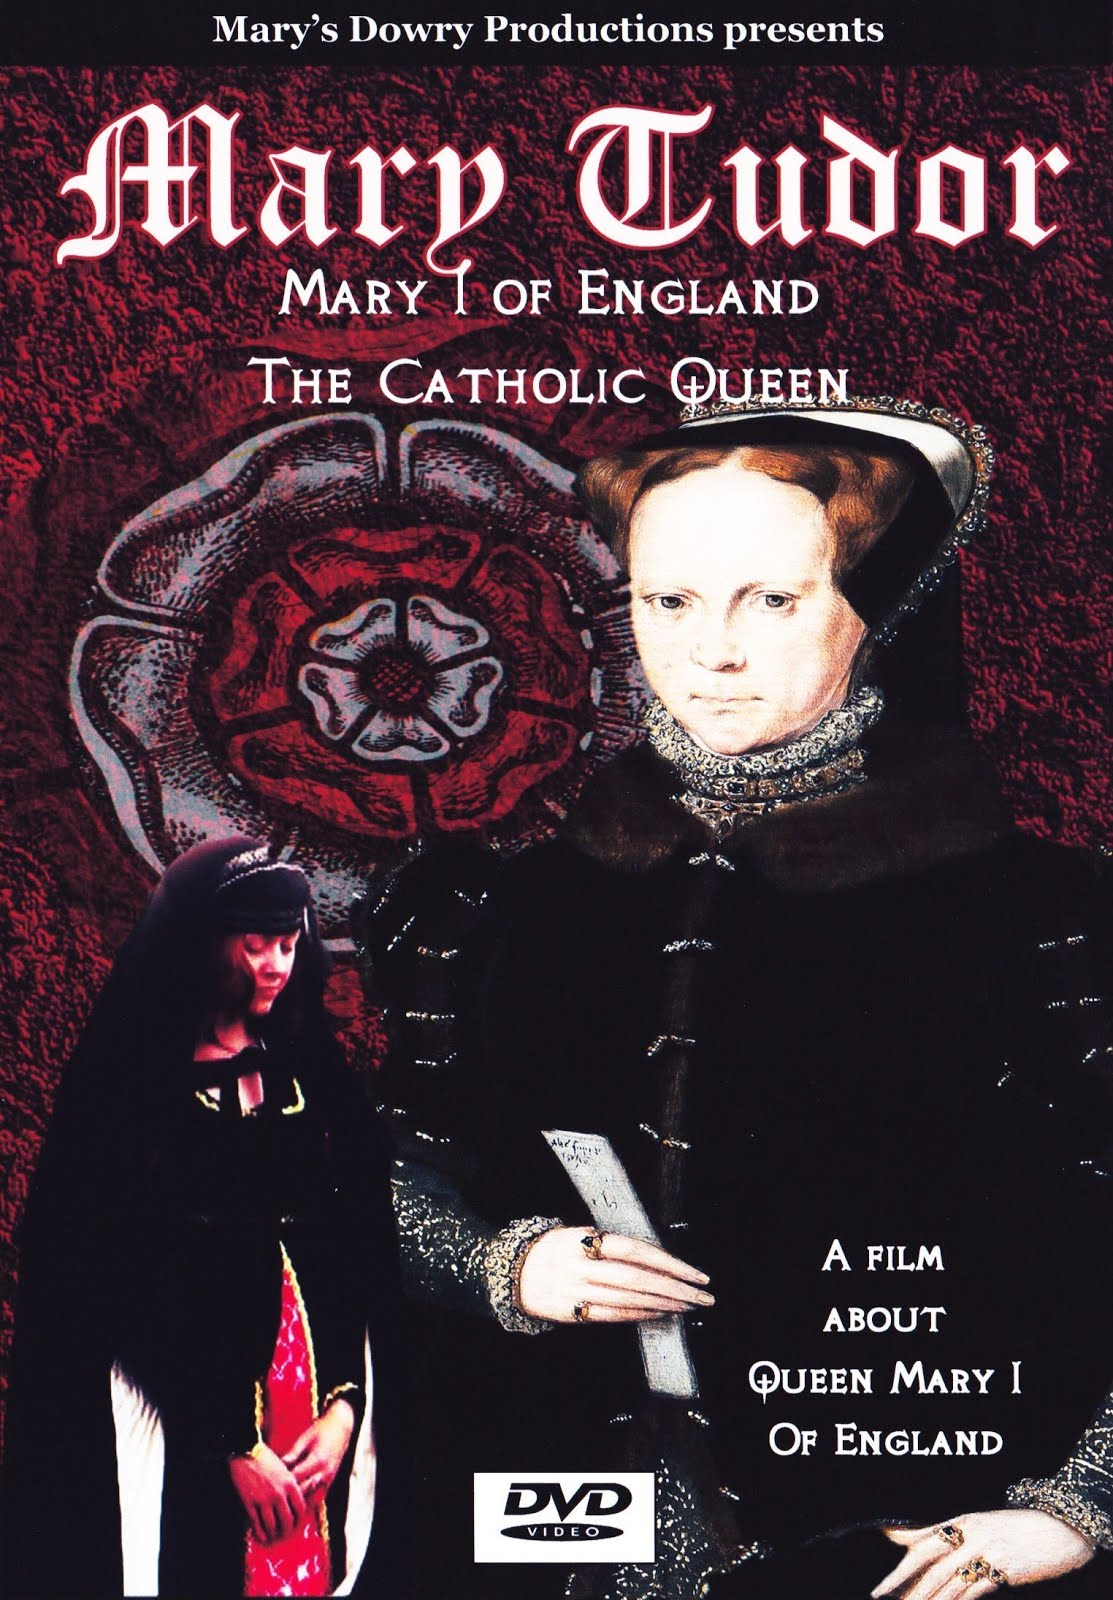 MARY TUDOR: QUEEN MARY I OF ENGLAND